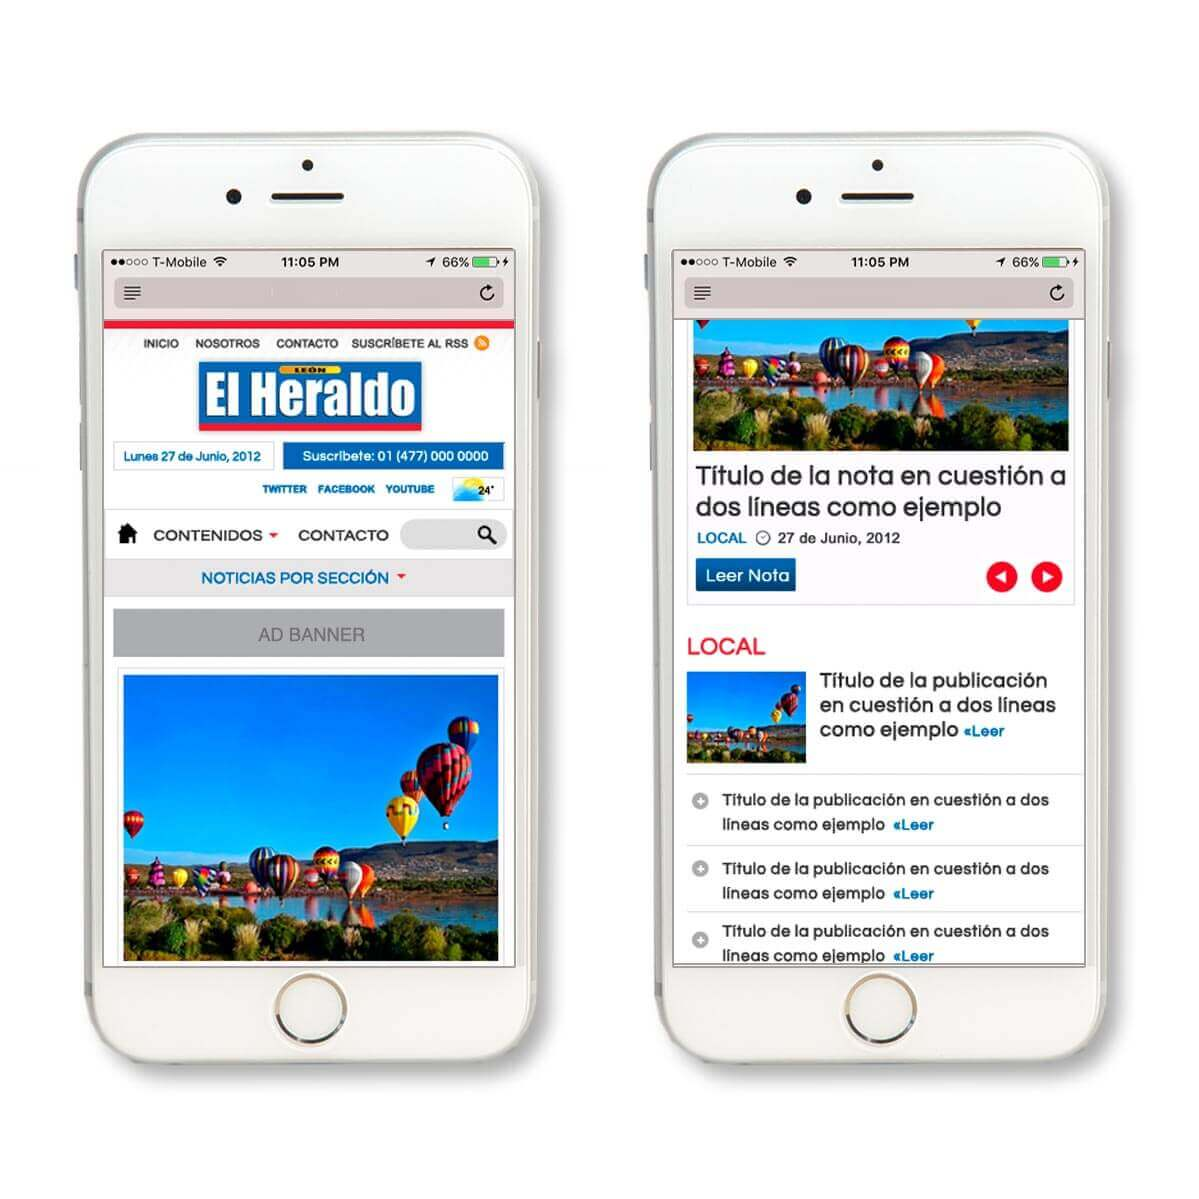 El Heraldo on mobile safari for iPhone